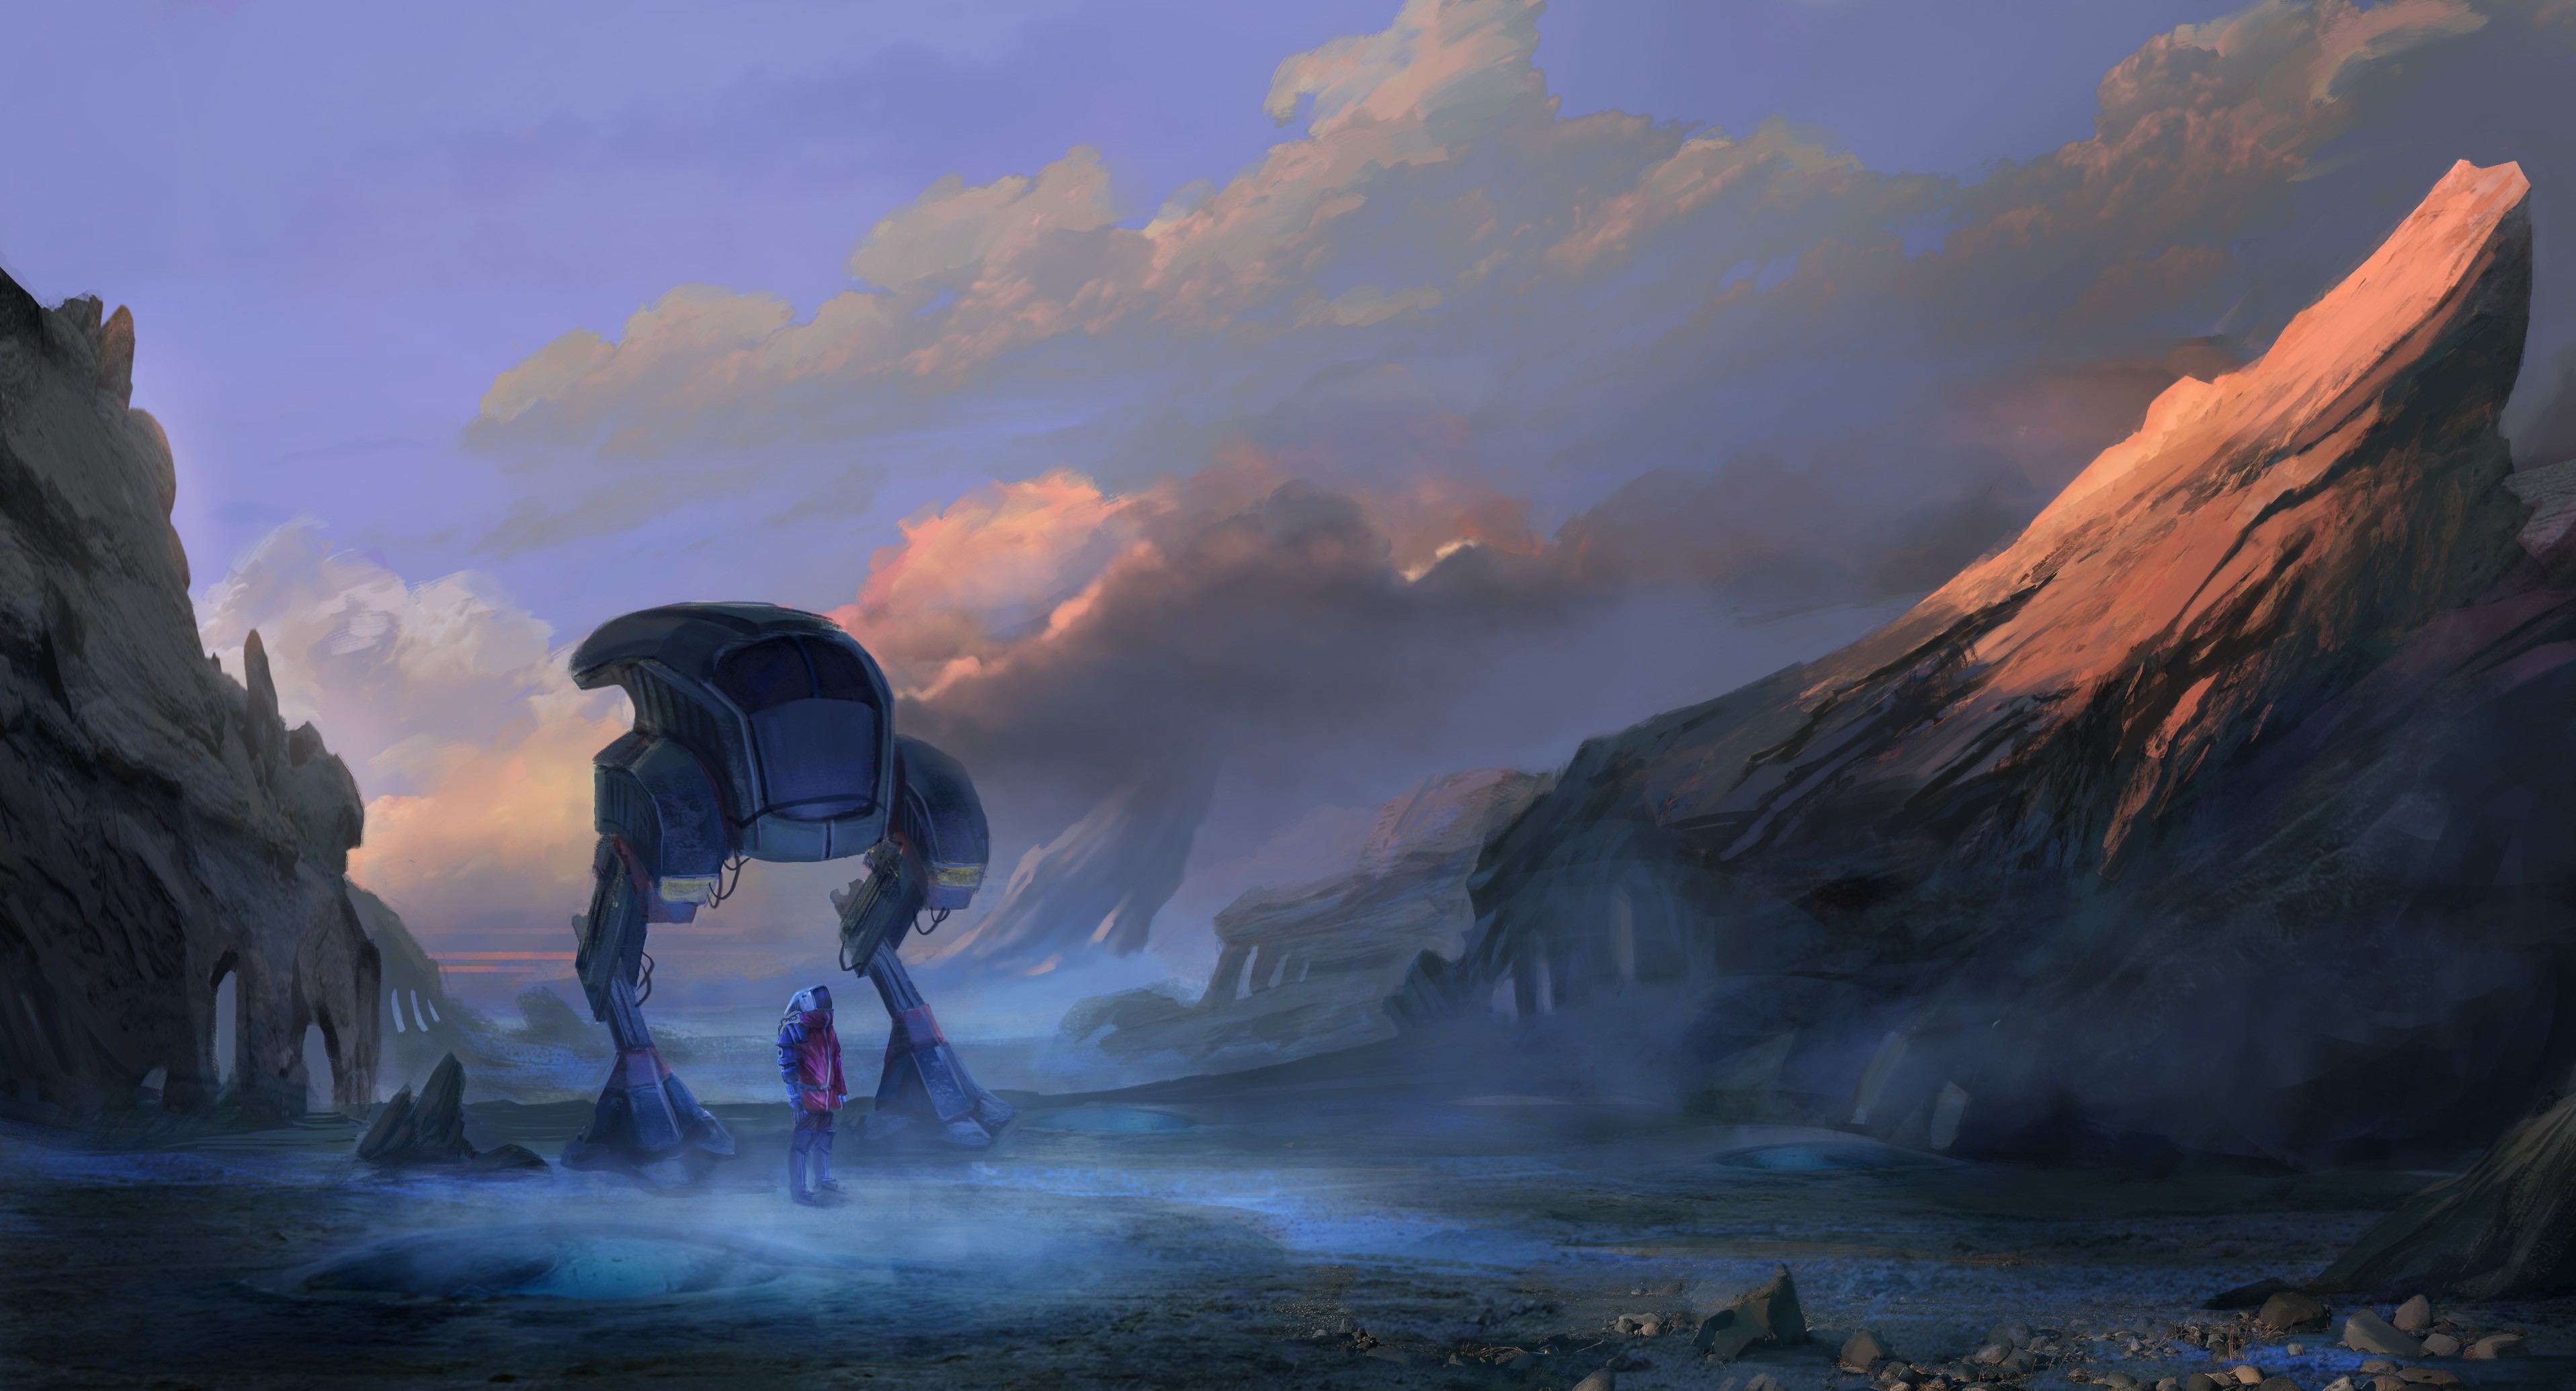 144511 download wallpaper Art, Robot, Technologies, Technology, Cyborg, Future screensavers and pictures for free